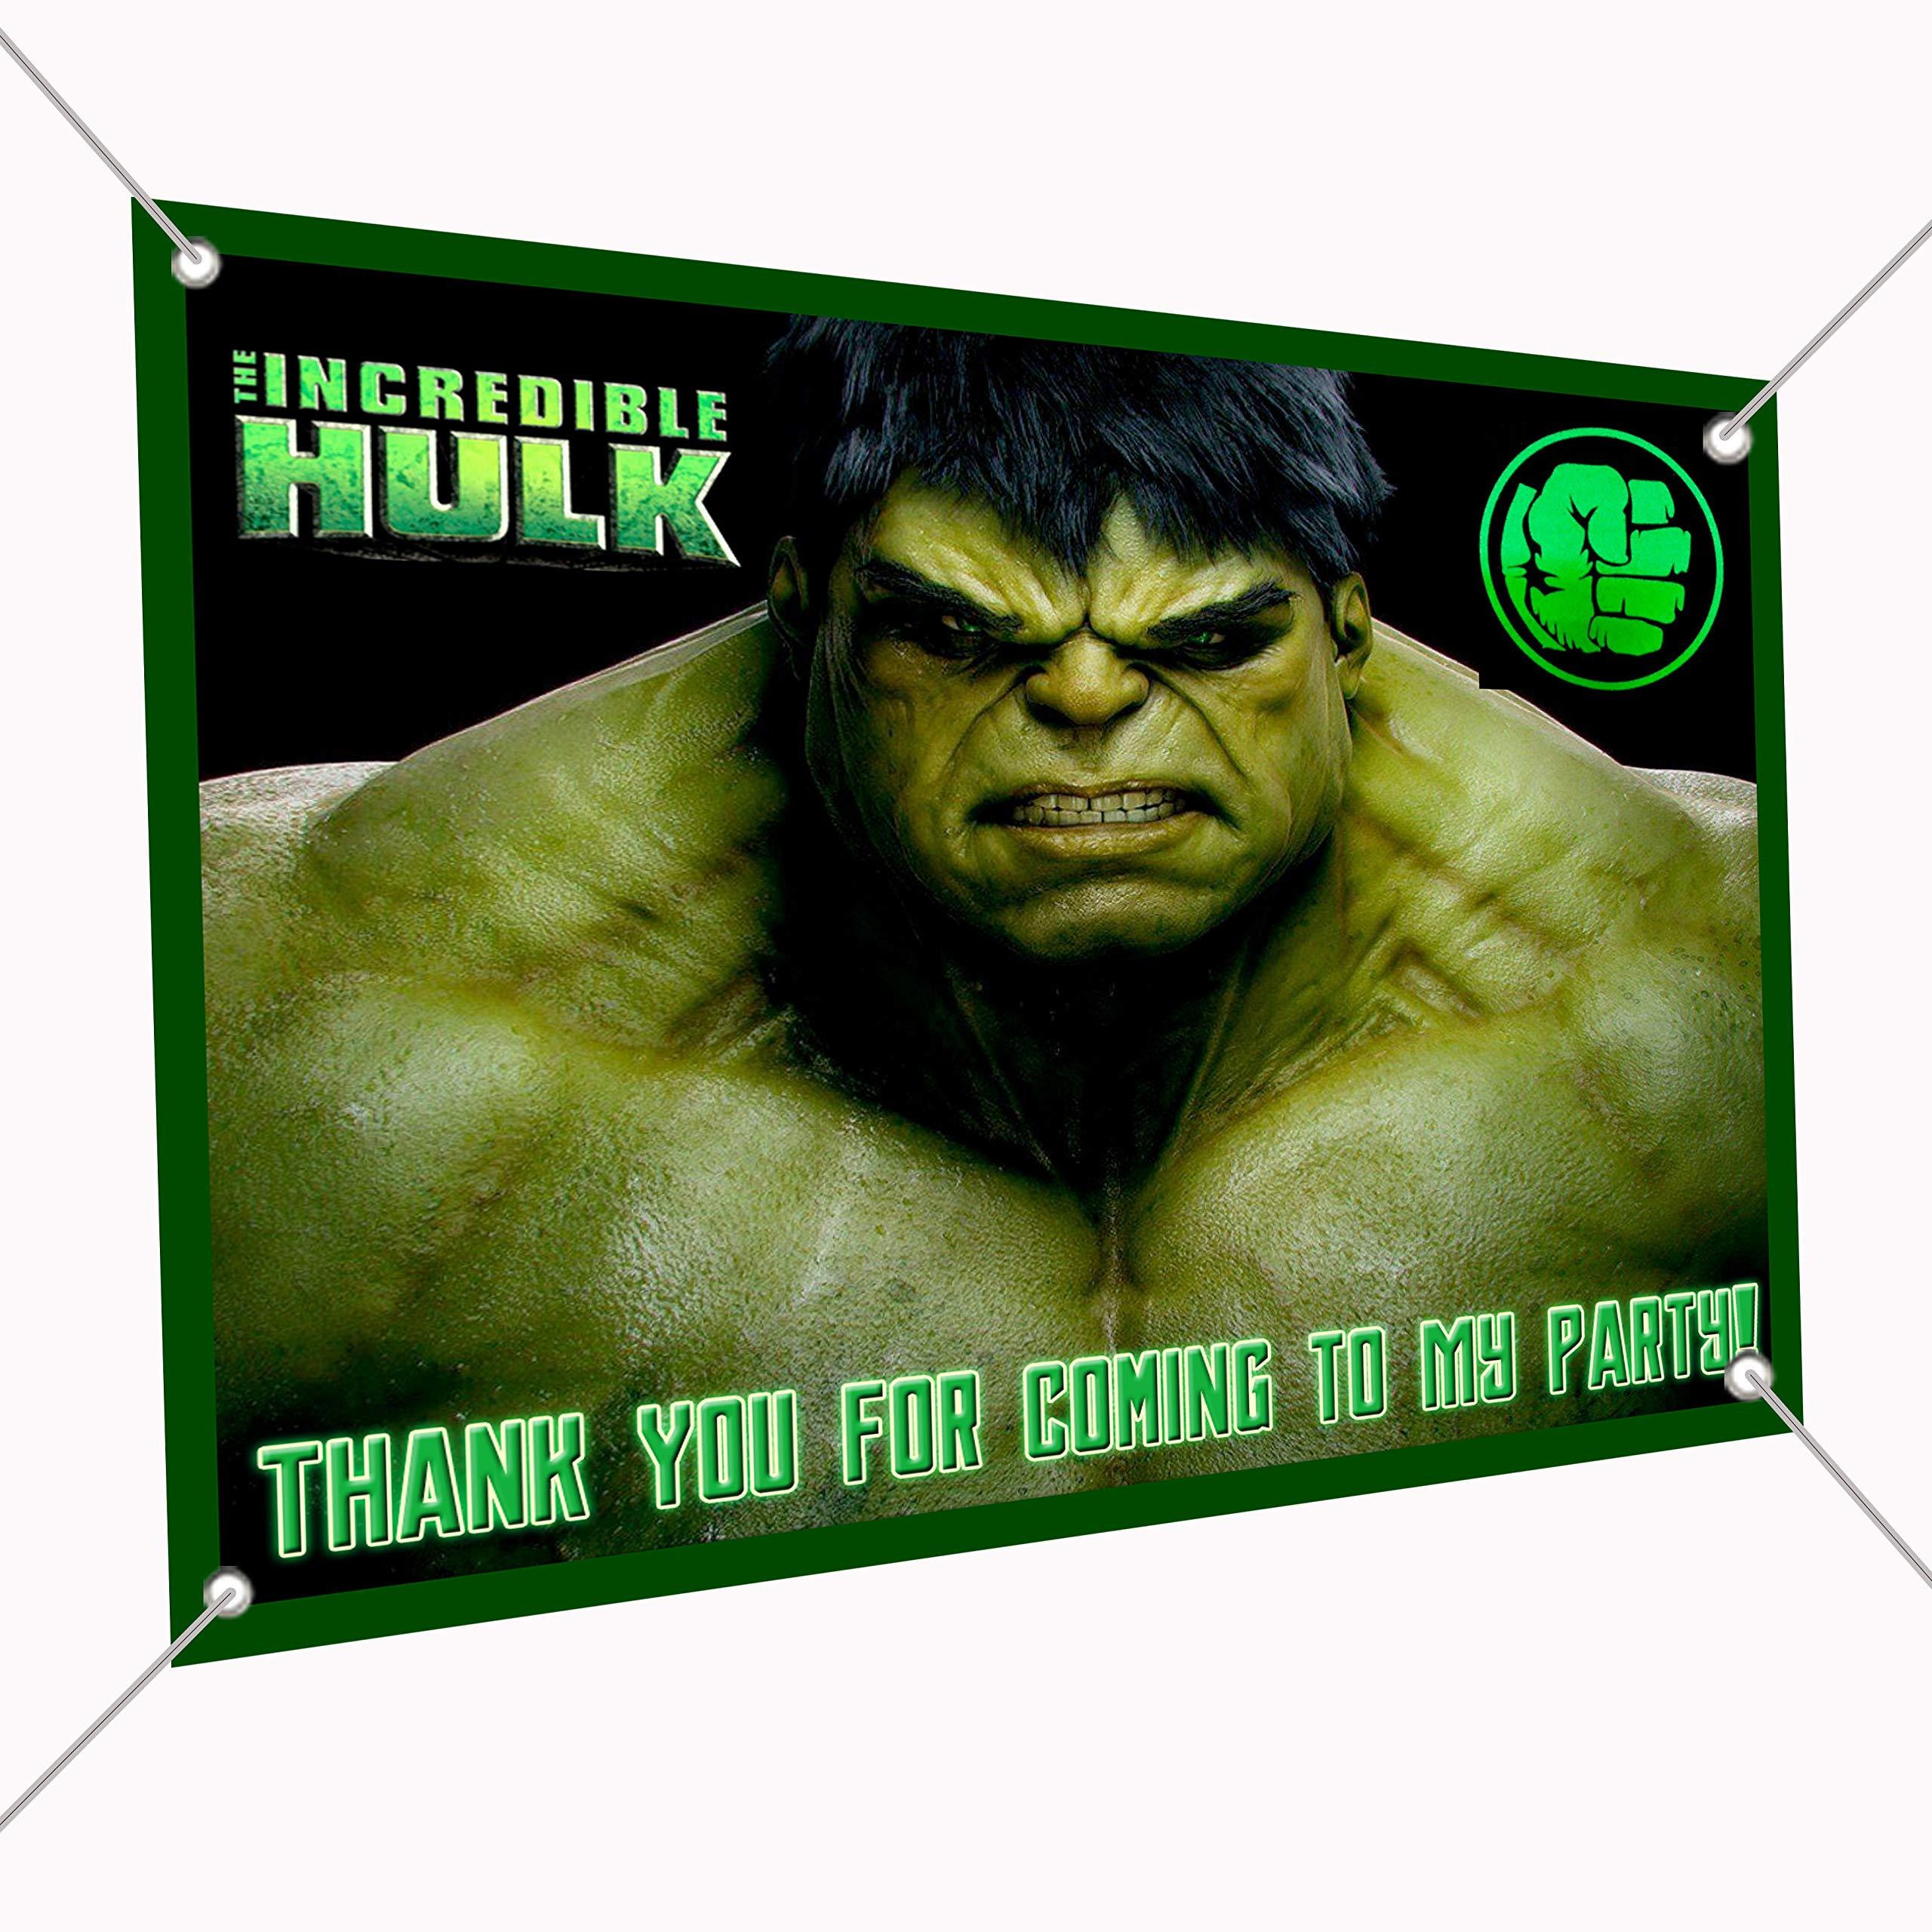 The Incredible Hulk Banner Large Vinyl Indoor or Outdoor Banner Sign Poster Backdrop, Party Favor Decoration, 30'' x 24'', 2.5' x 2', Infinity War Movie Green Giant